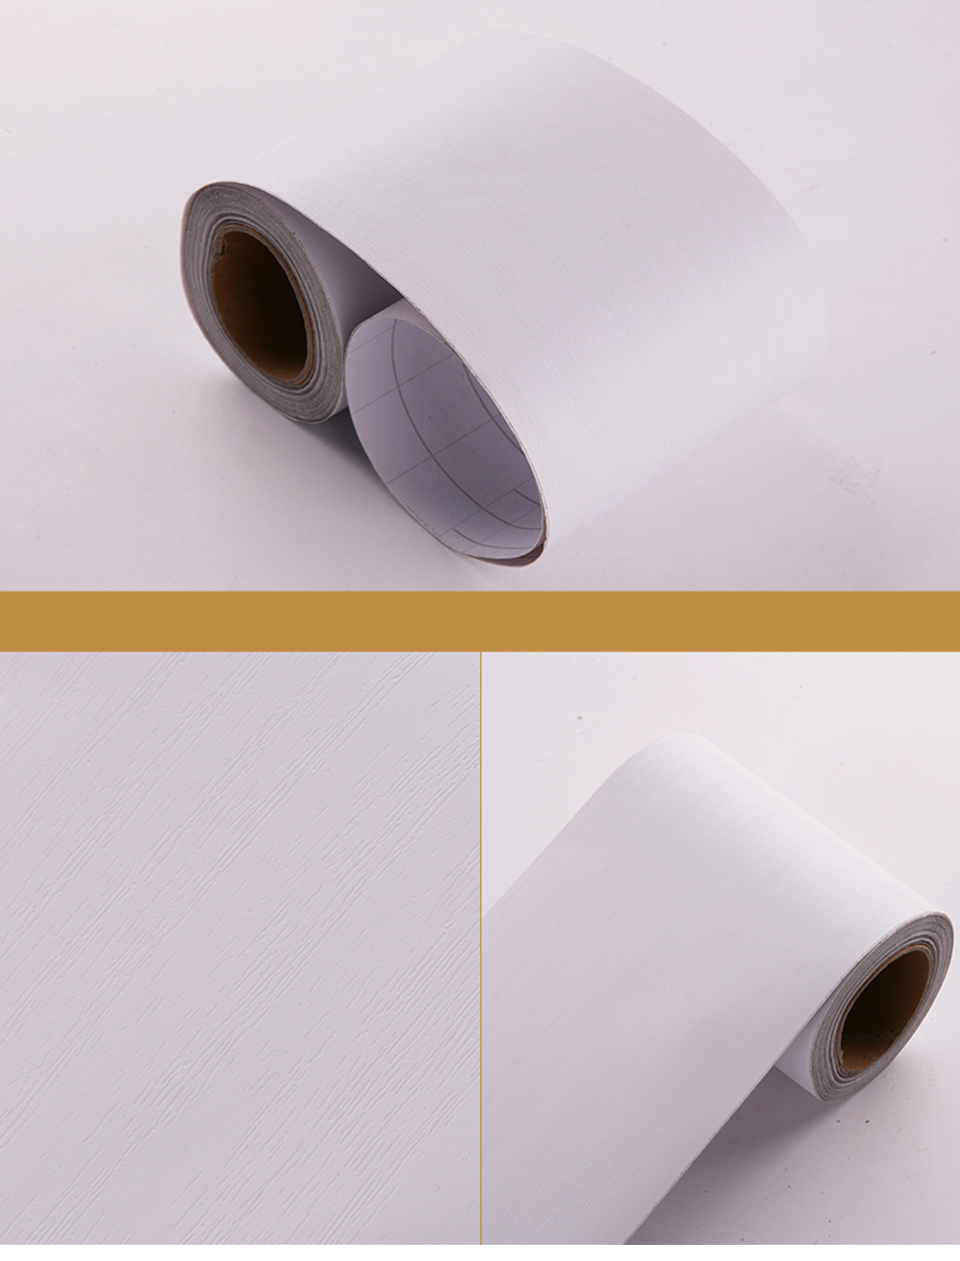 Wood Self Adhesive Window Decal Living Room Floor Border Skirting Contact Paper Waterproof Waist Line Wallpaper Home Improvement H83abd92e5d934a318af236e2d7e6125di